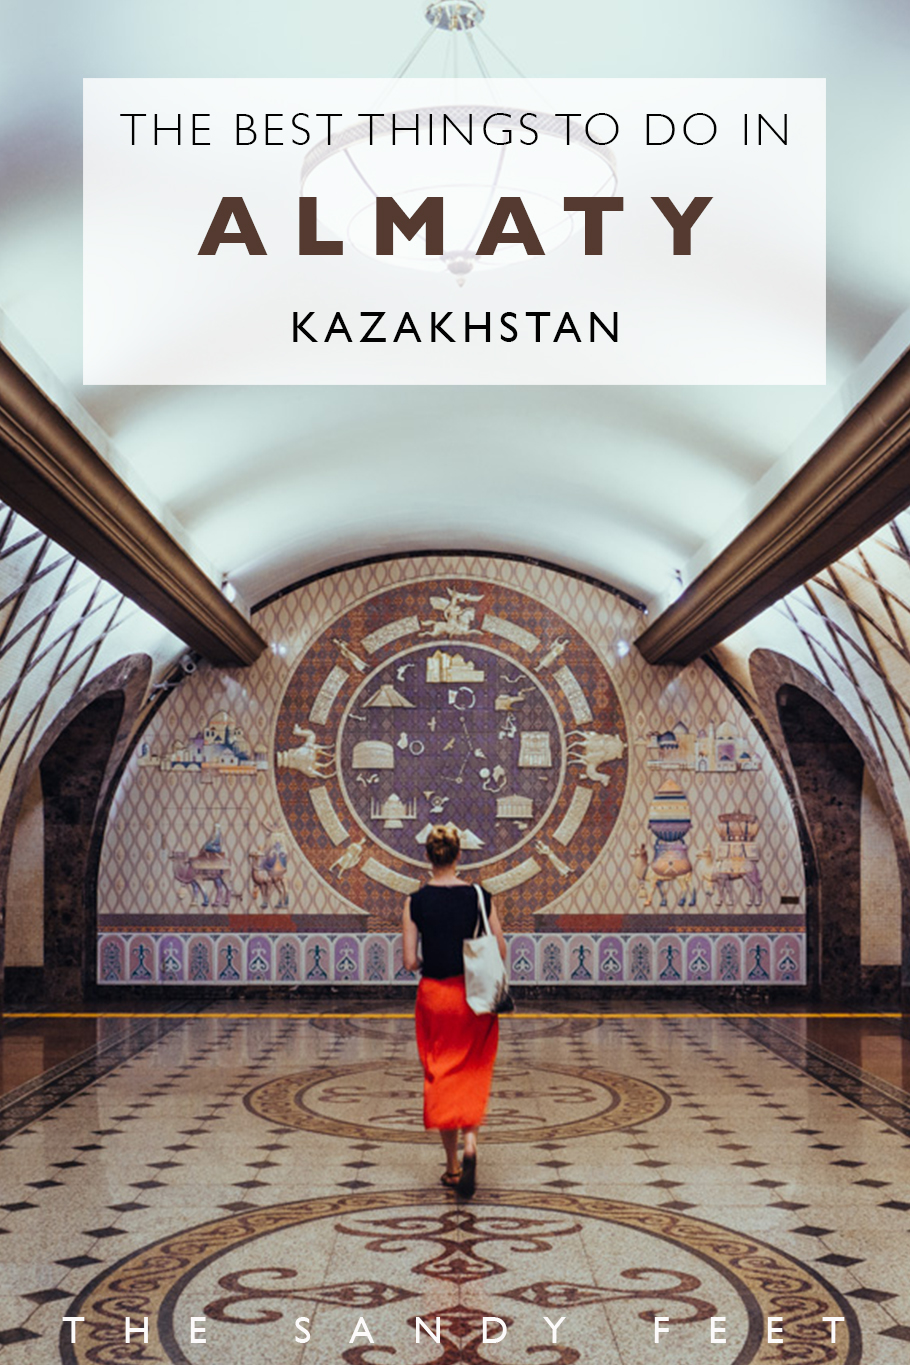 The Very Best Things To Do In Almaty | Kazakhstan